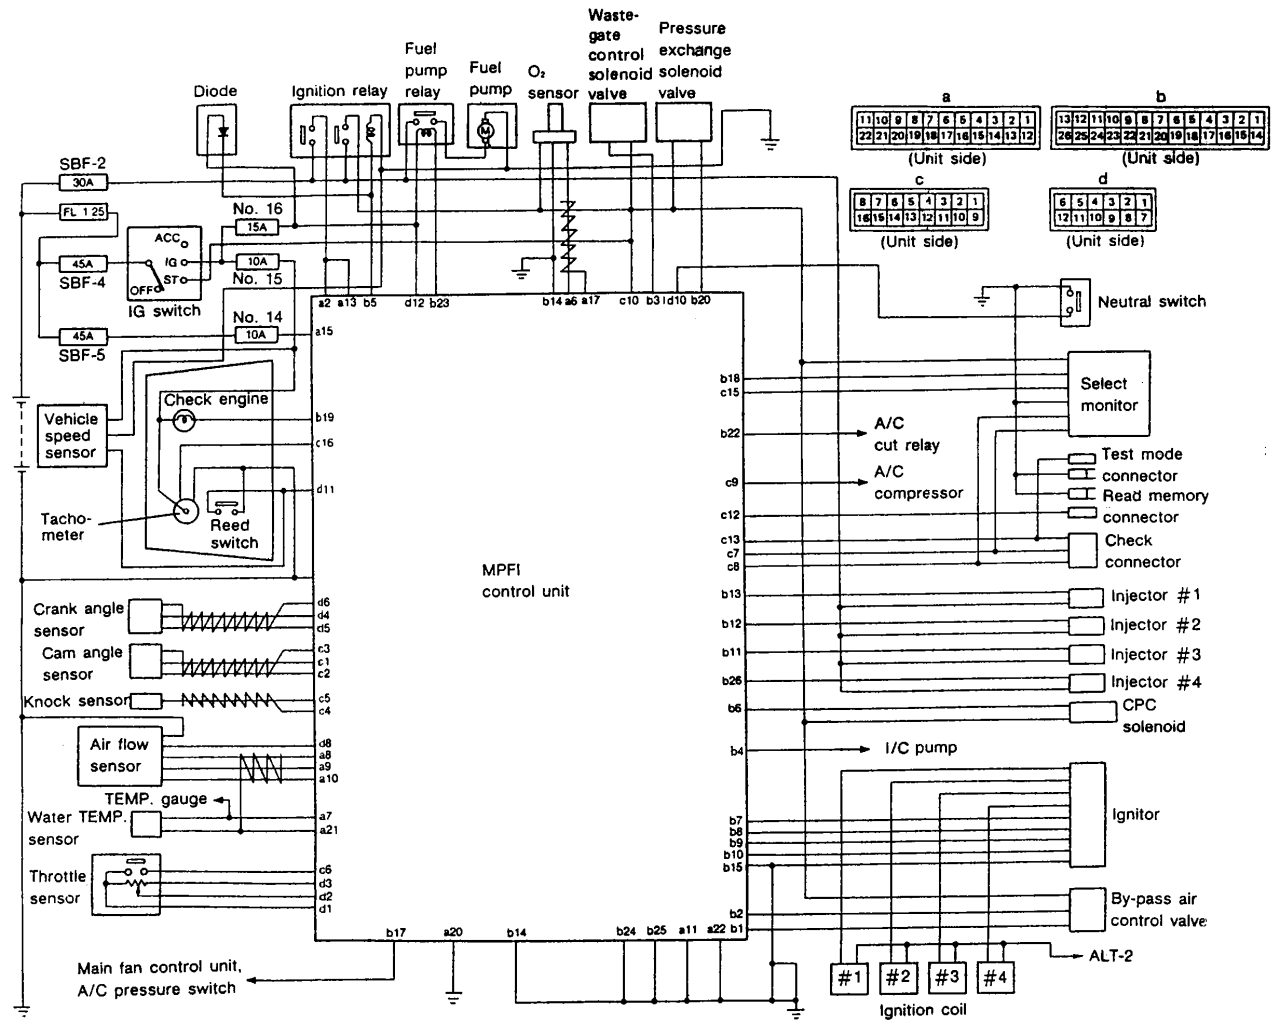 1997 subaru legacy stereo wiring diagram Download-Subaru Legacy Engine Diagram Beautiful Vehicle Subaru Impreza 1991 1996 Rusefi 6-c